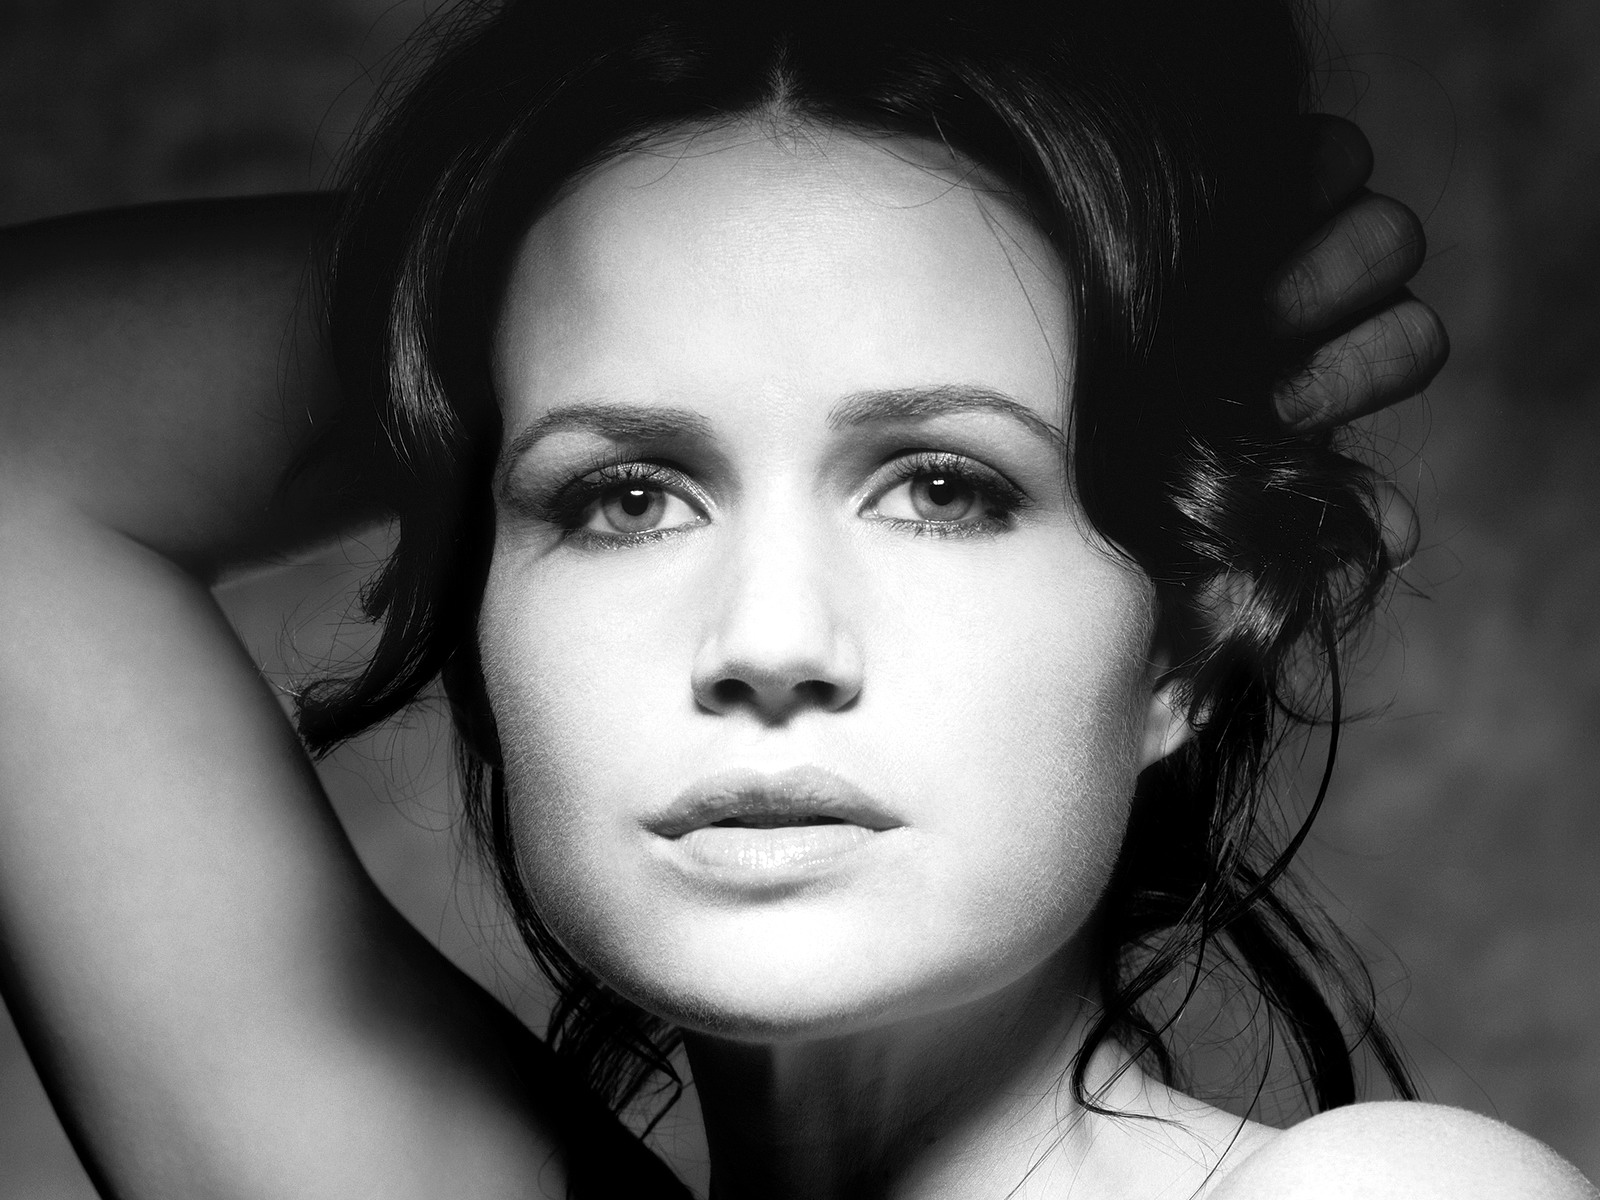 Animated Hd Wallpapers 1080p Free Download Carla Gugino Hd Wallpapers Free Download